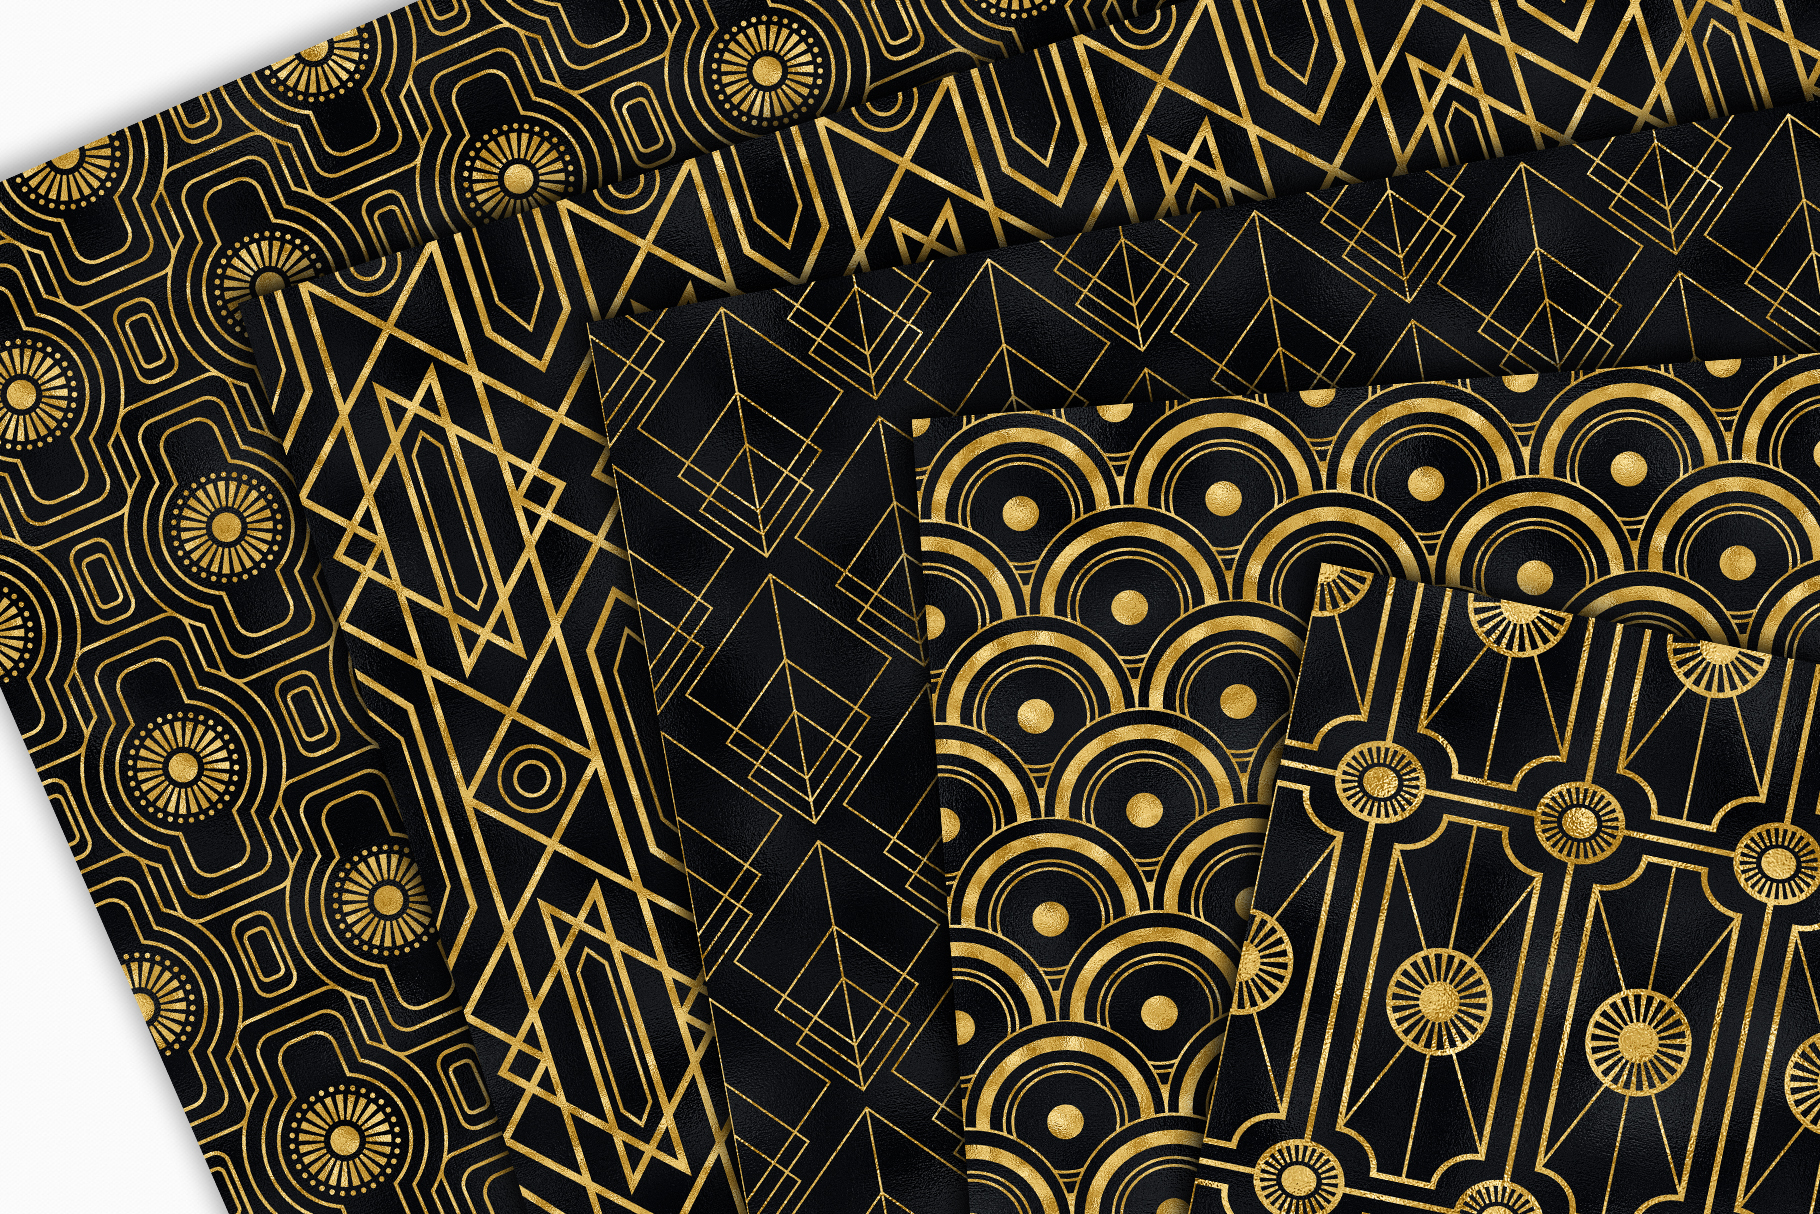 Geometric Art Deco Patterns - 20 Seamless Vector Patterns example image 12